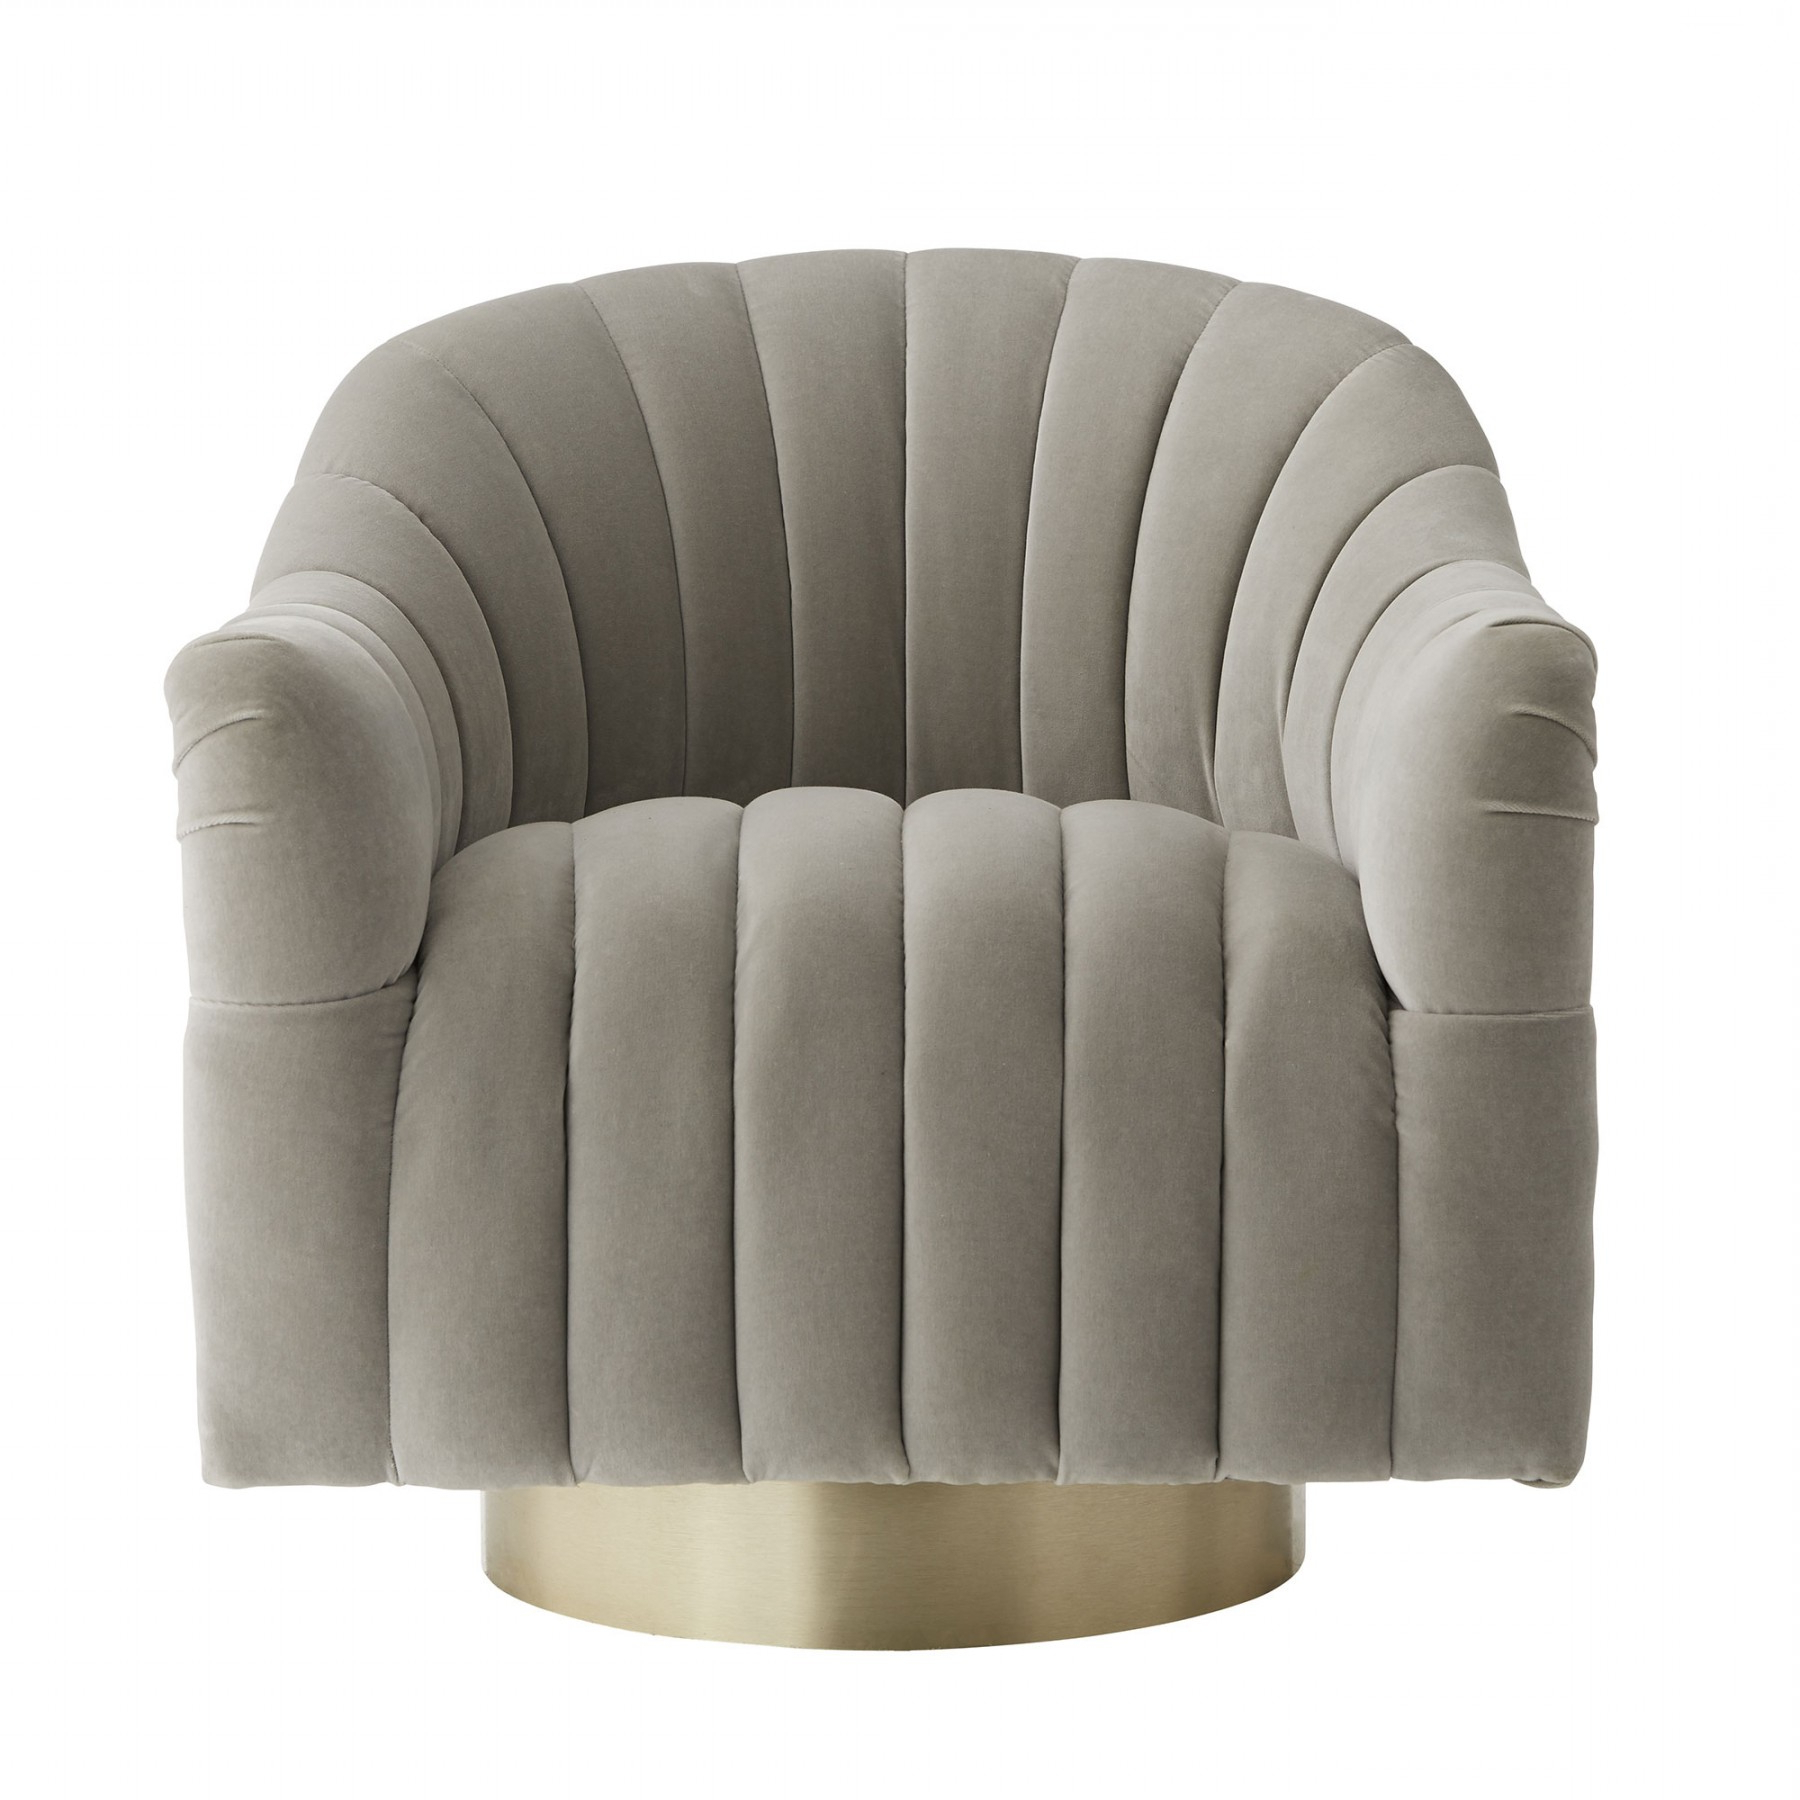 Most Recent Springsteen Chair Flint Velvet Champagne Swivel Intended For Harbor Grey Swivel Accent Chairs (View 5 of 20)